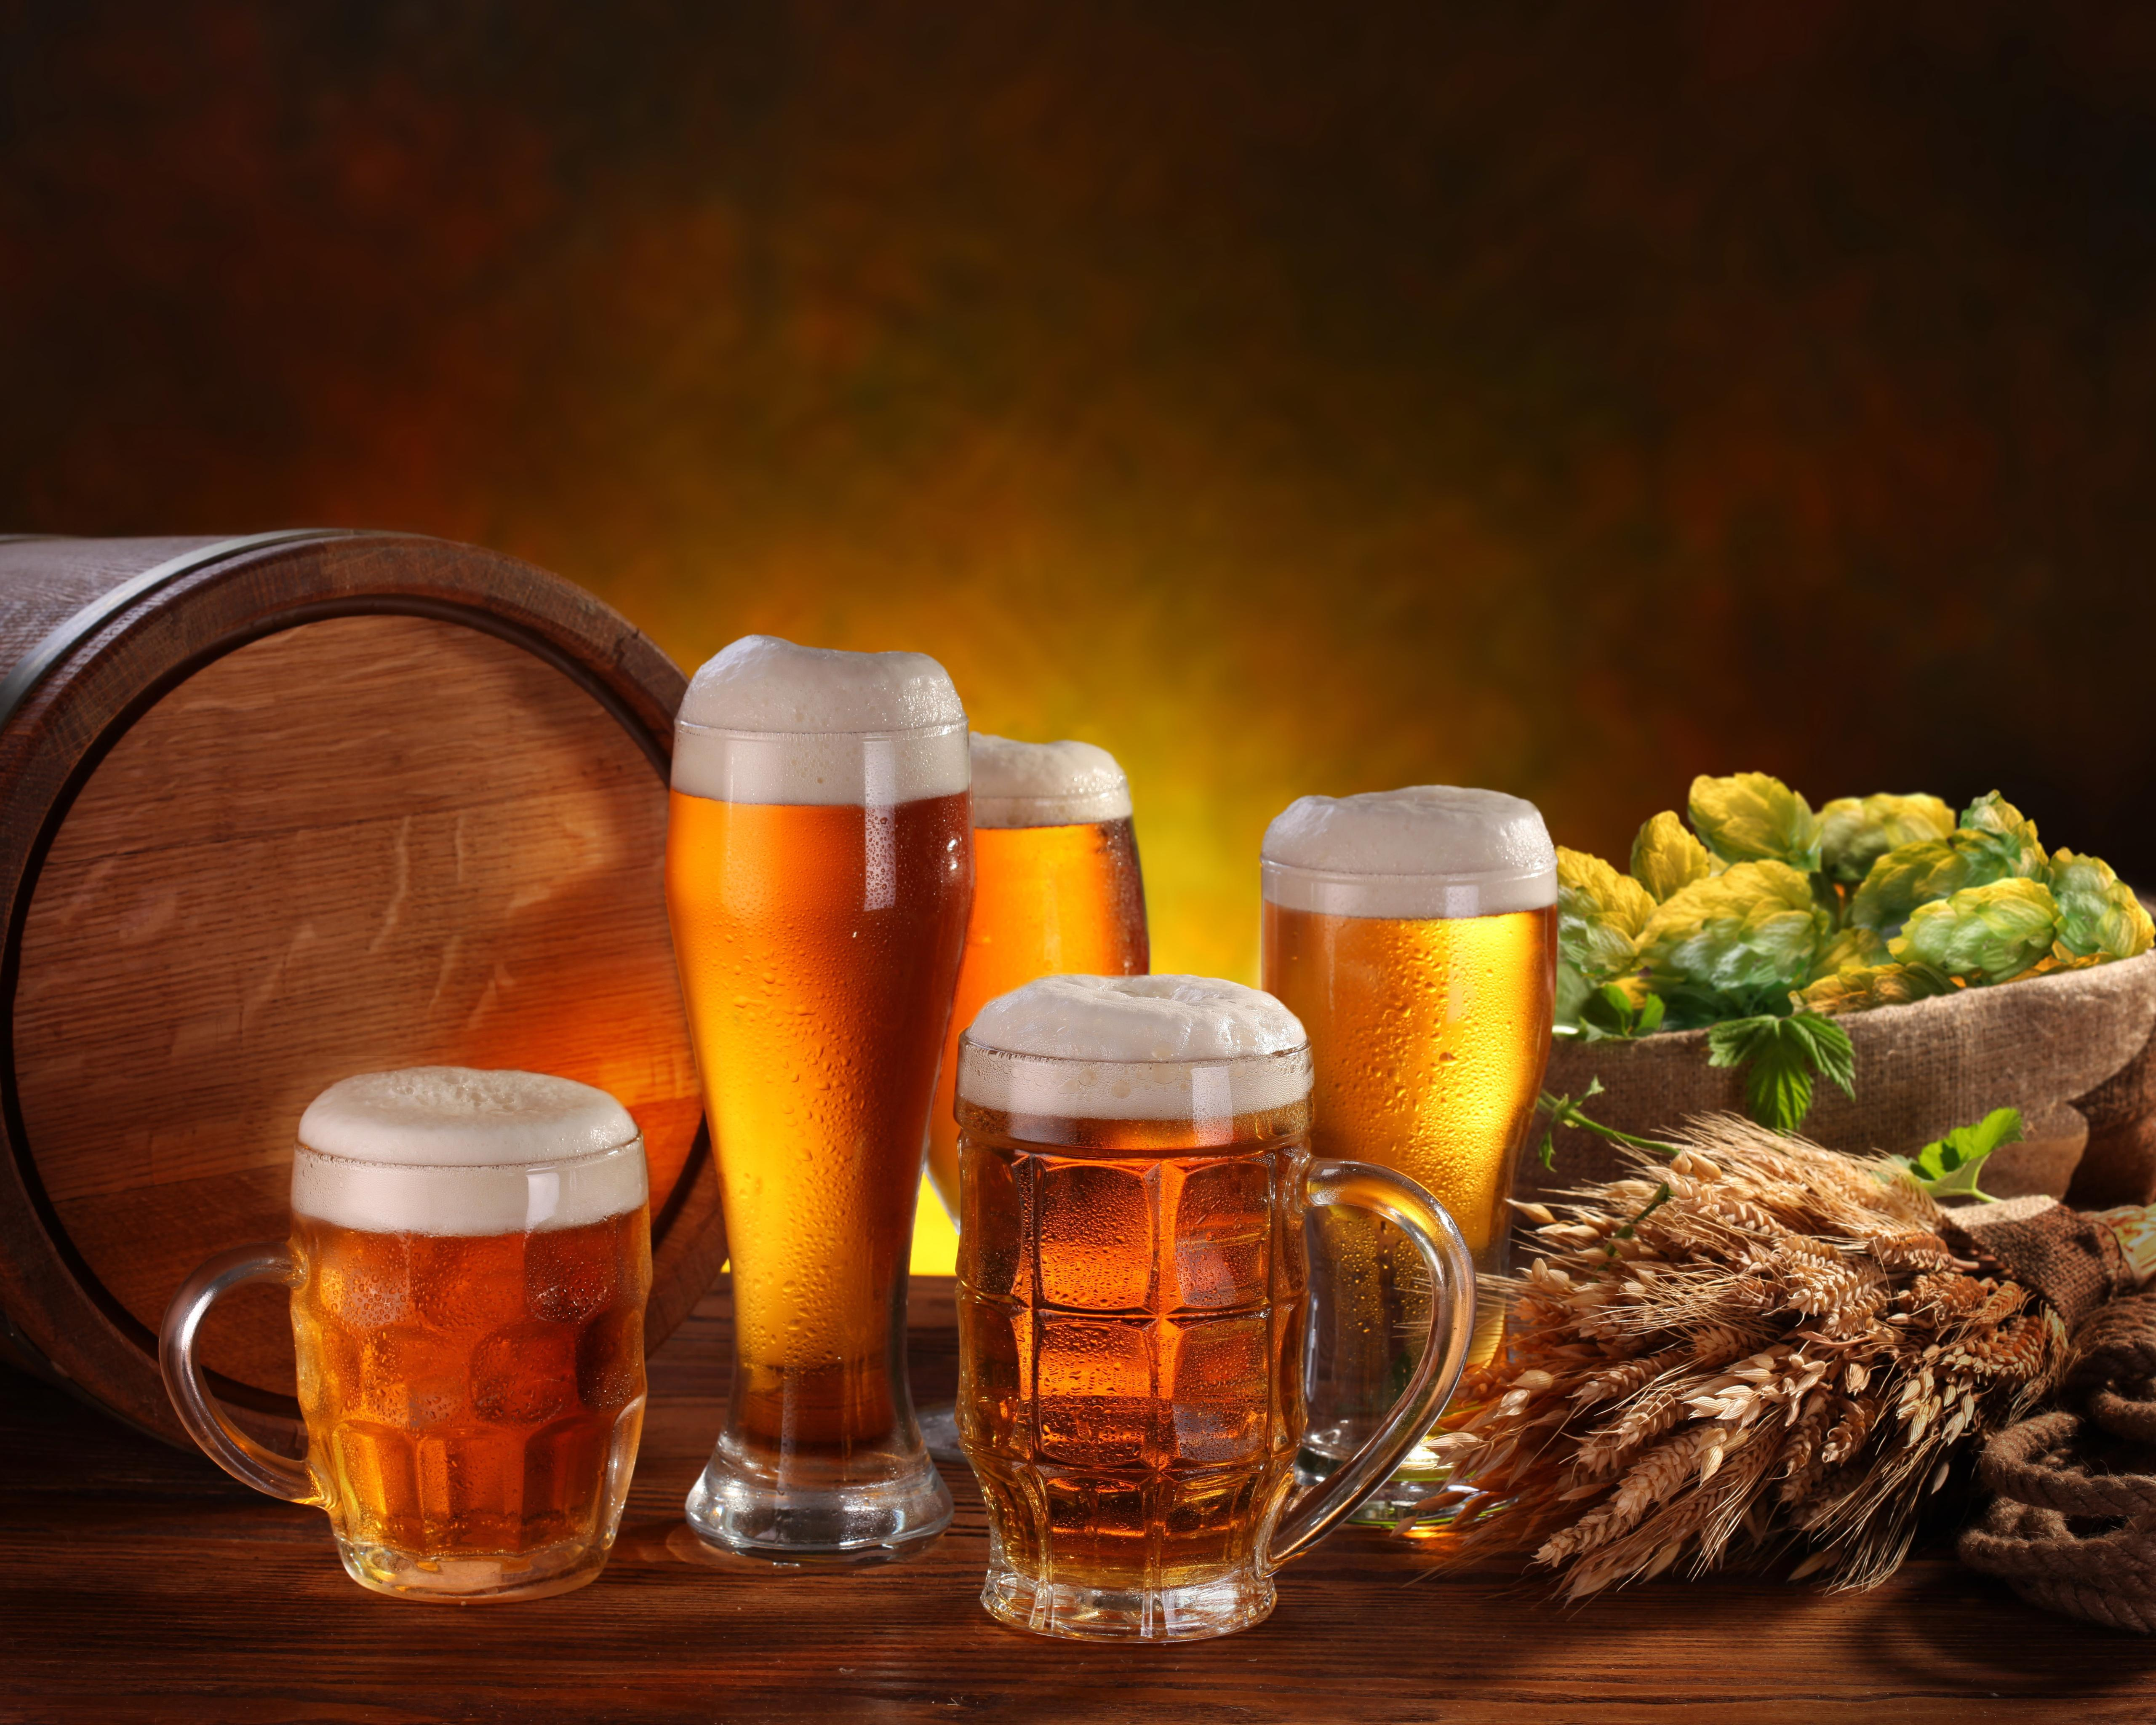 Beer Pints 5K UHD 5:4 5120x4096 Wallpapers